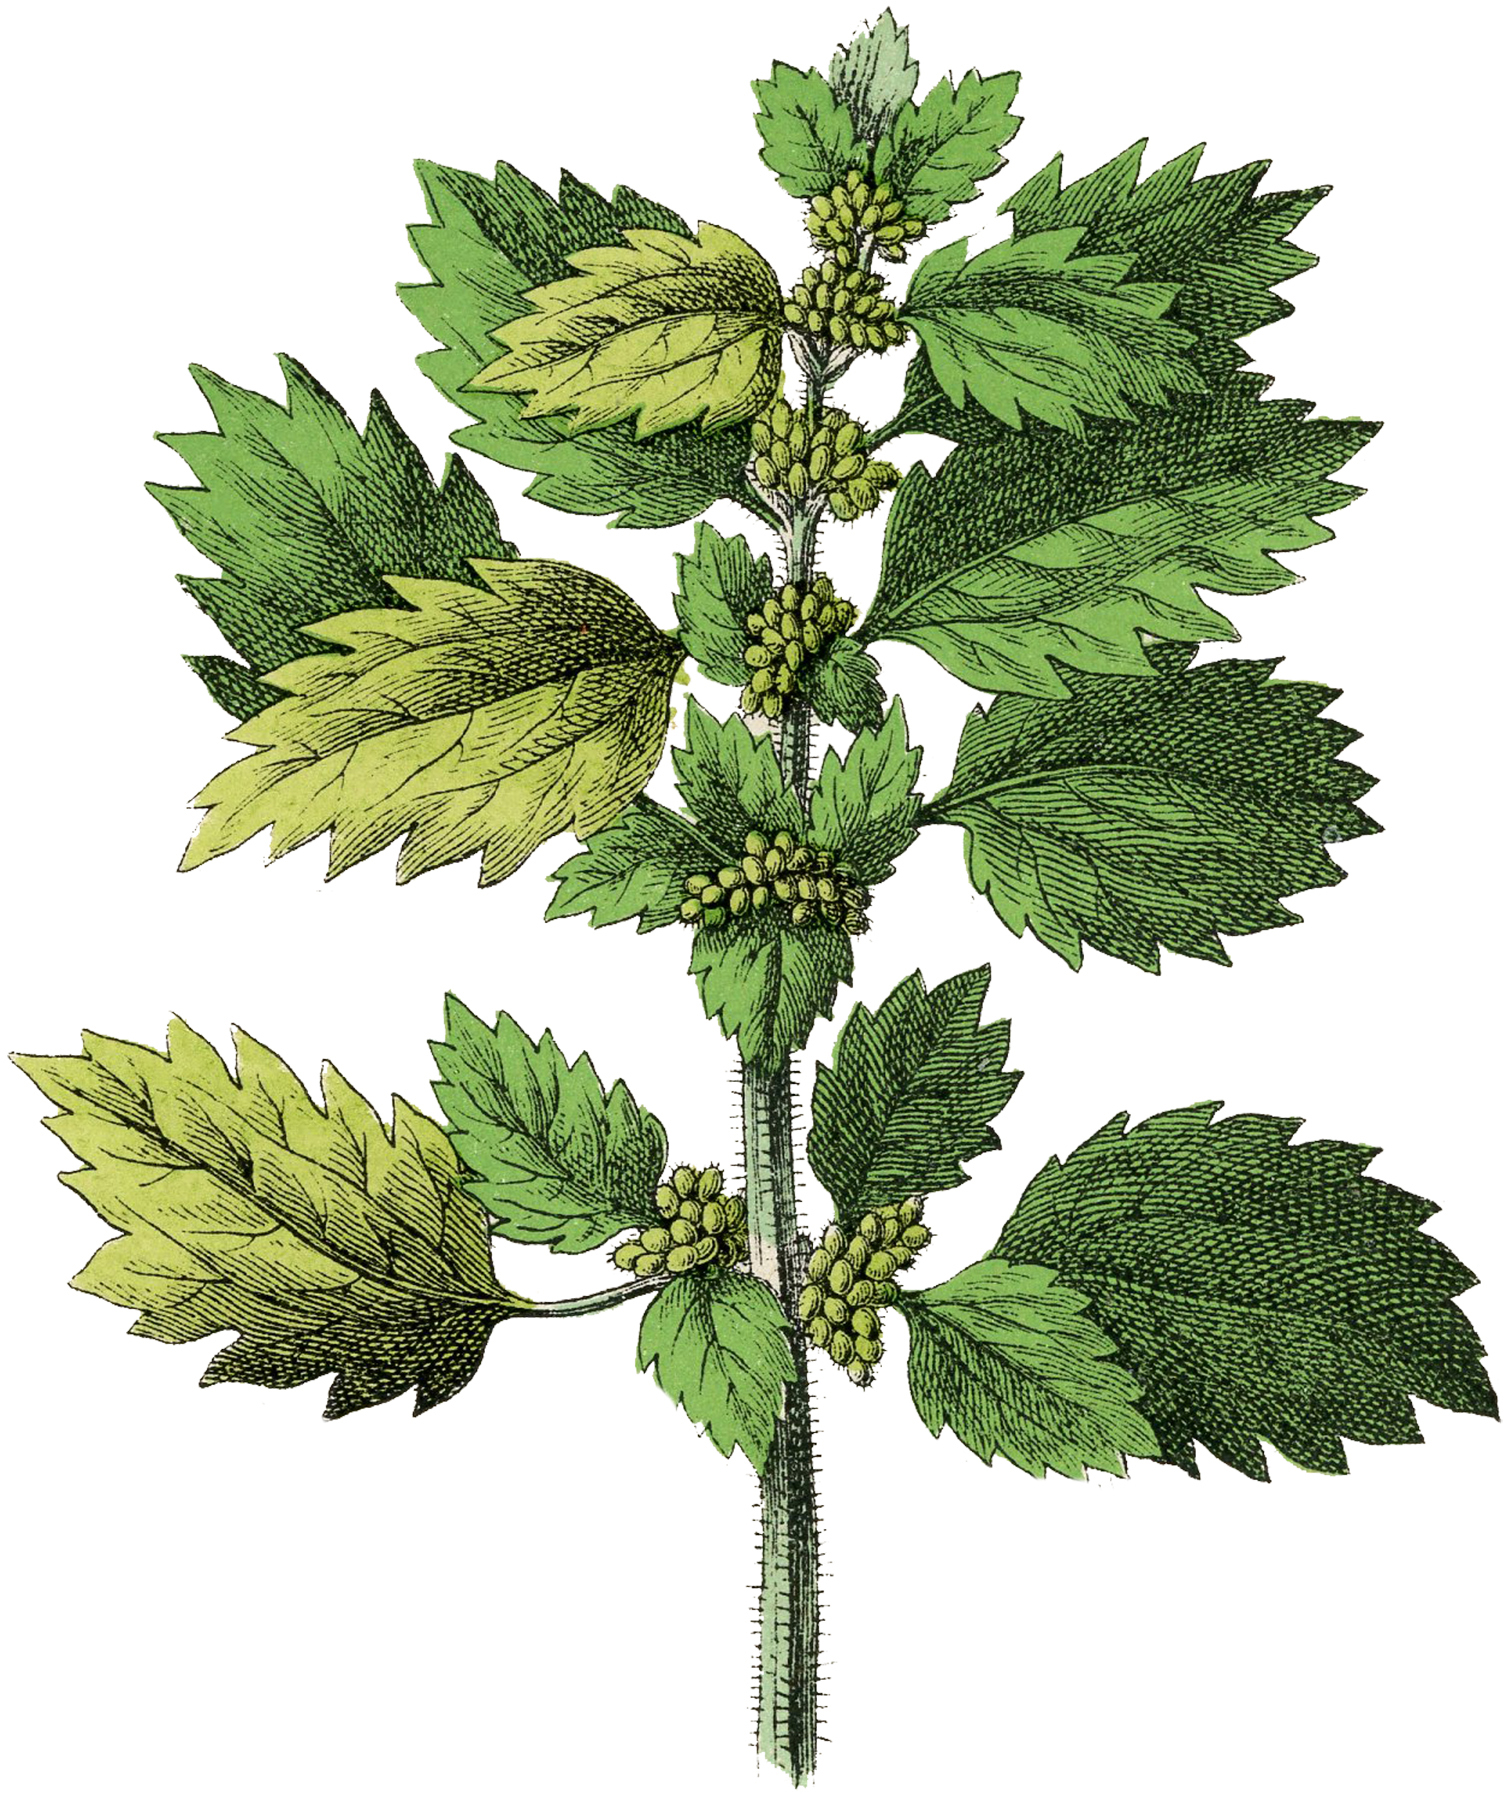 Botanical Nettle Herb Image - The Graphics Fairy